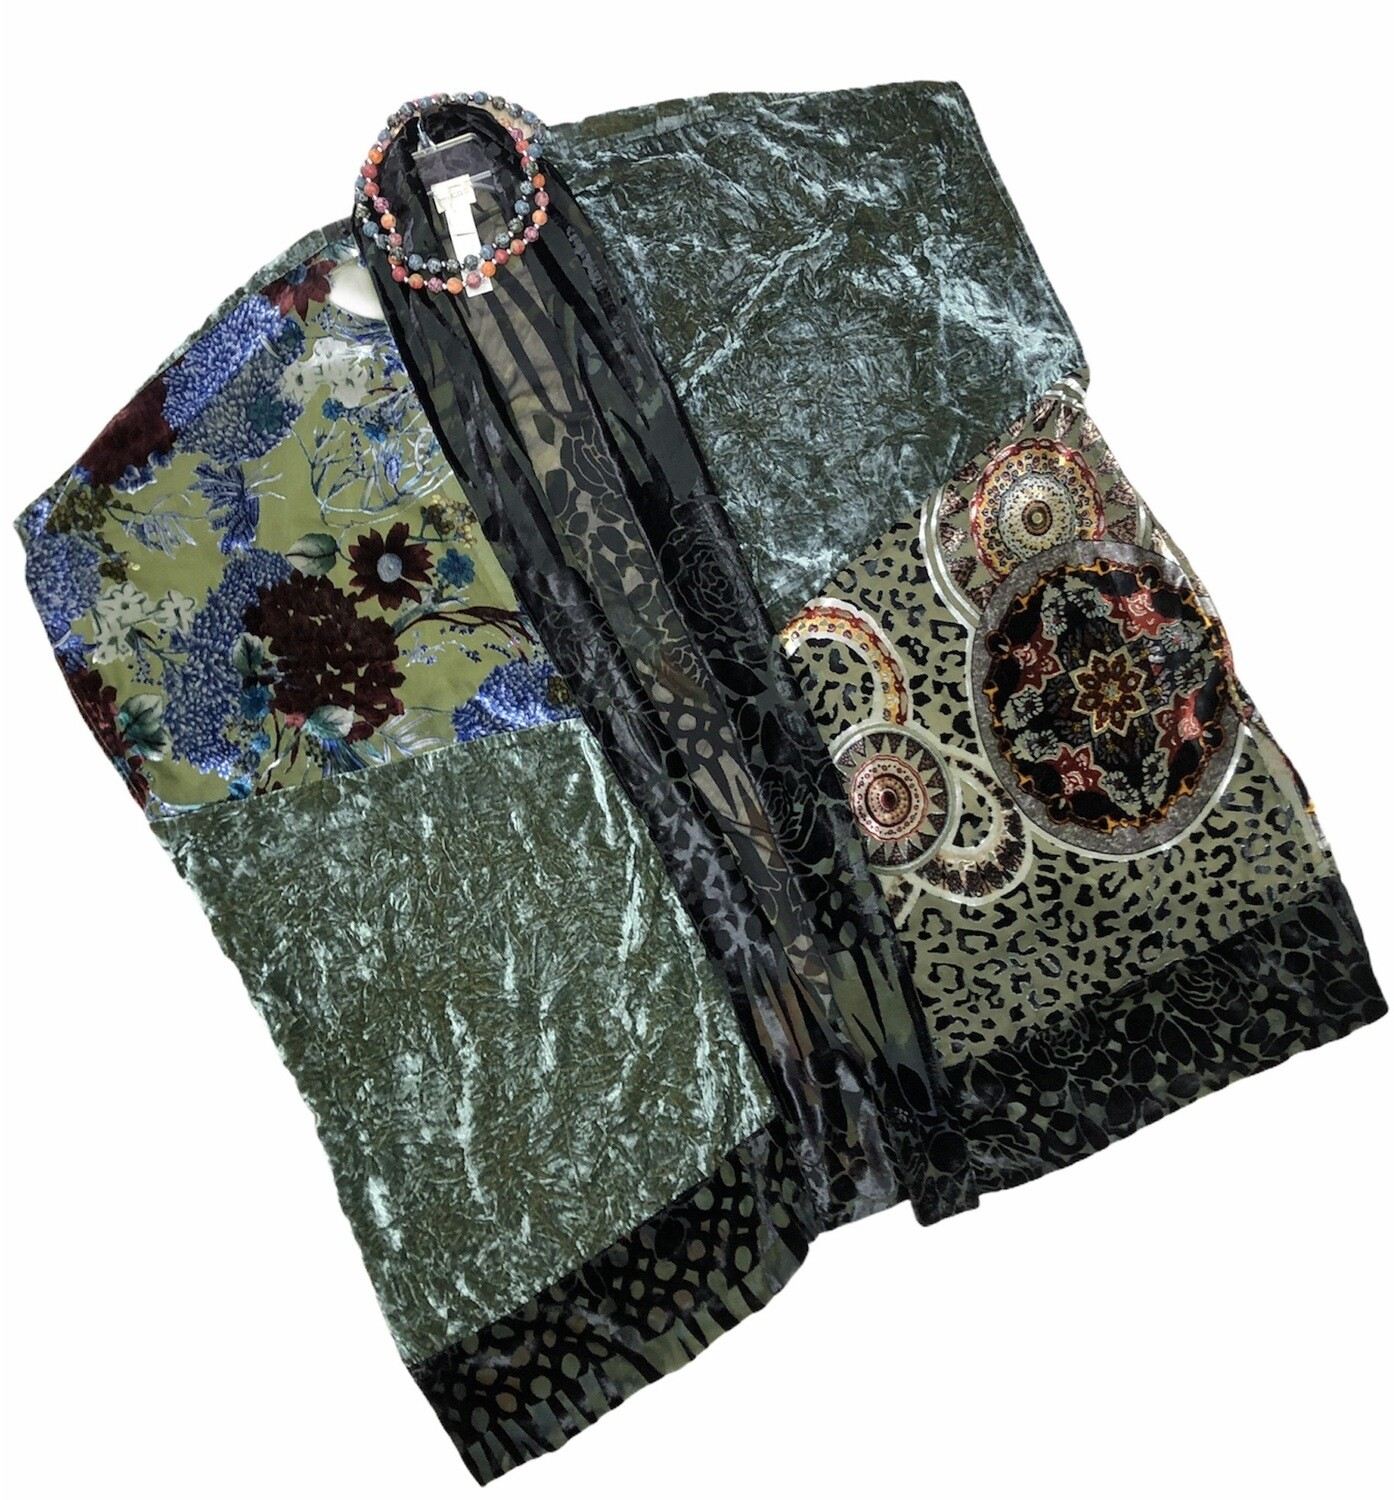 CHICOS Wearable Art Crushed Velvet Kimono Shawl ONE SIZE